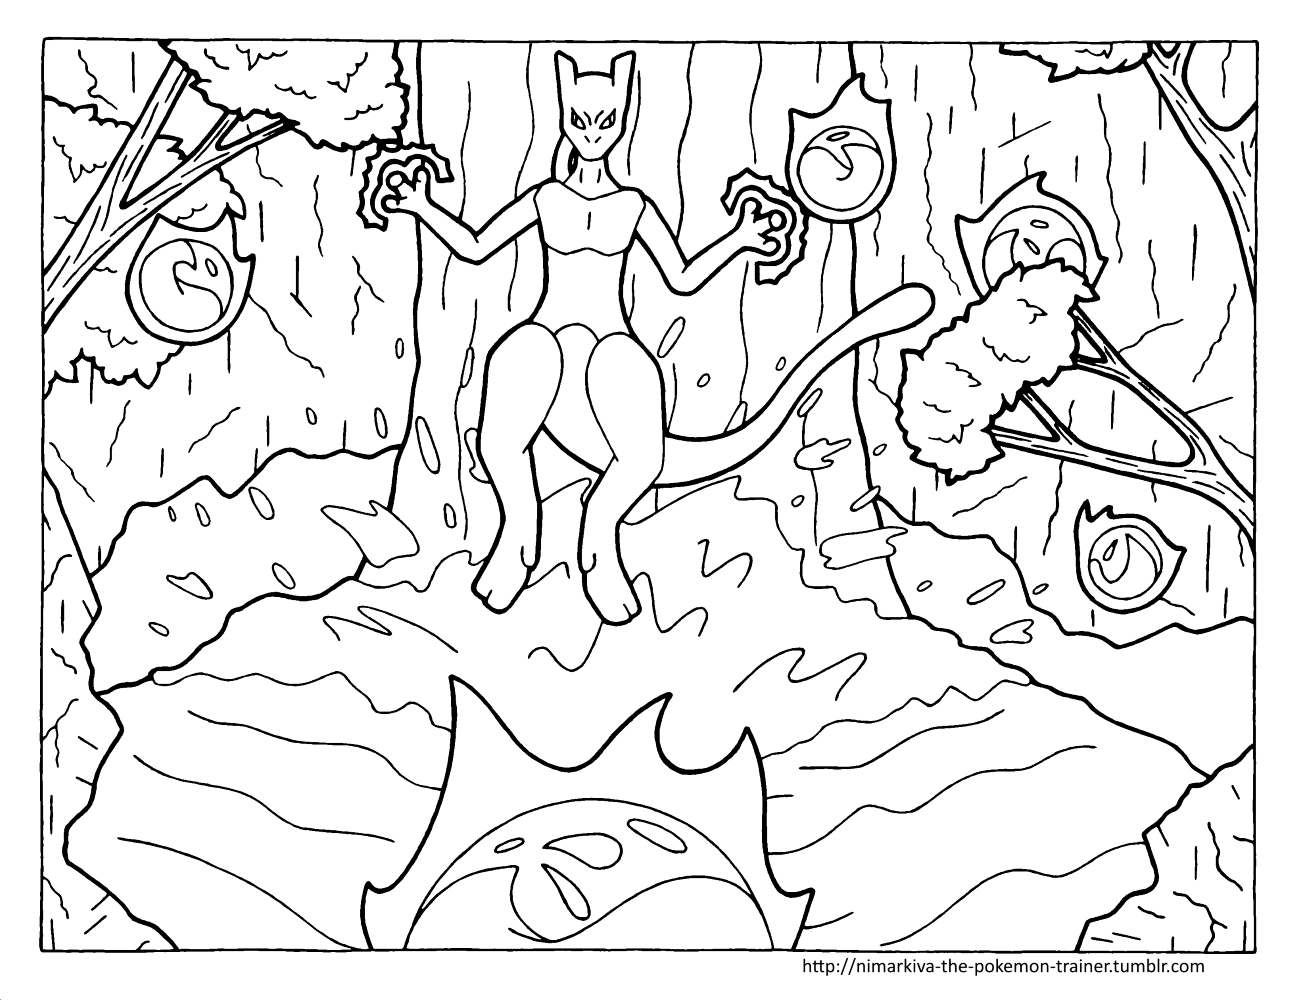 Mewtwo at the waterfall Coloring Page